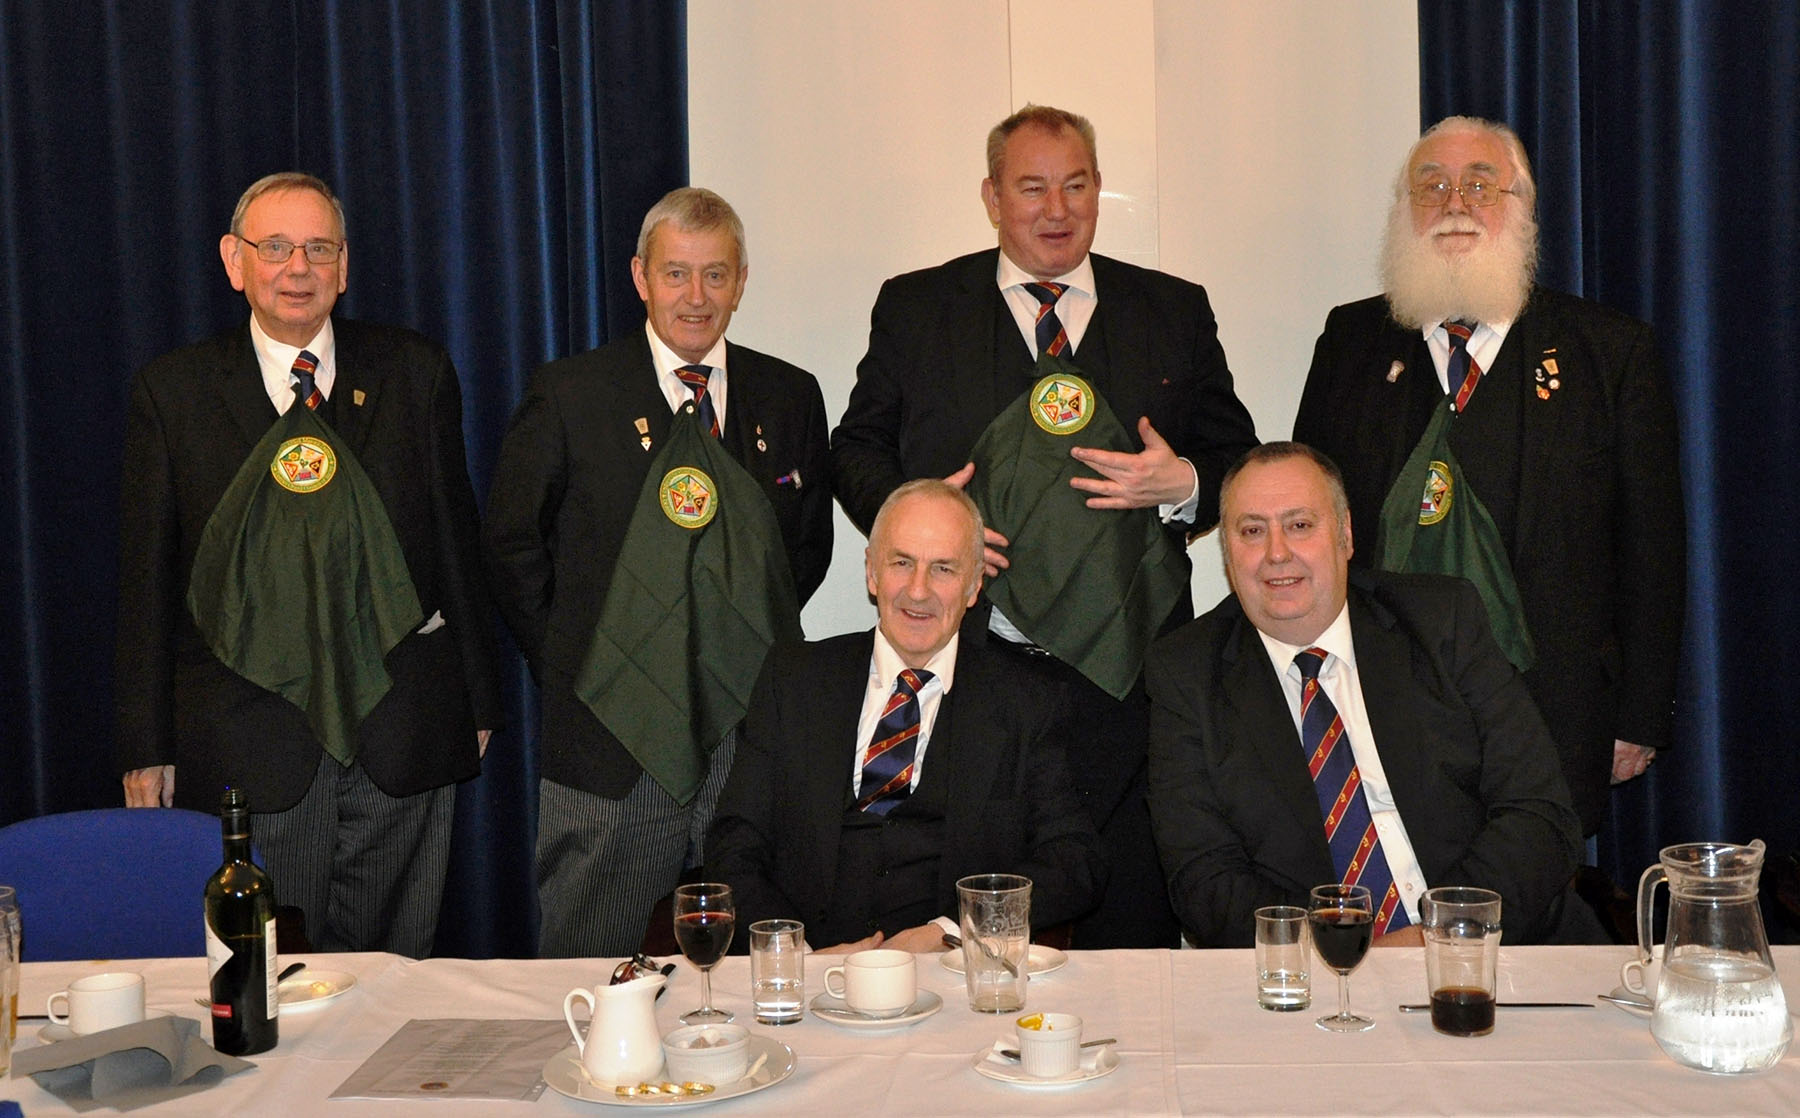 Fratres Calami Aerariique Lodge hosts the 2019 Secretaries, Treasurers and Directors Of Ceremonies Seminar